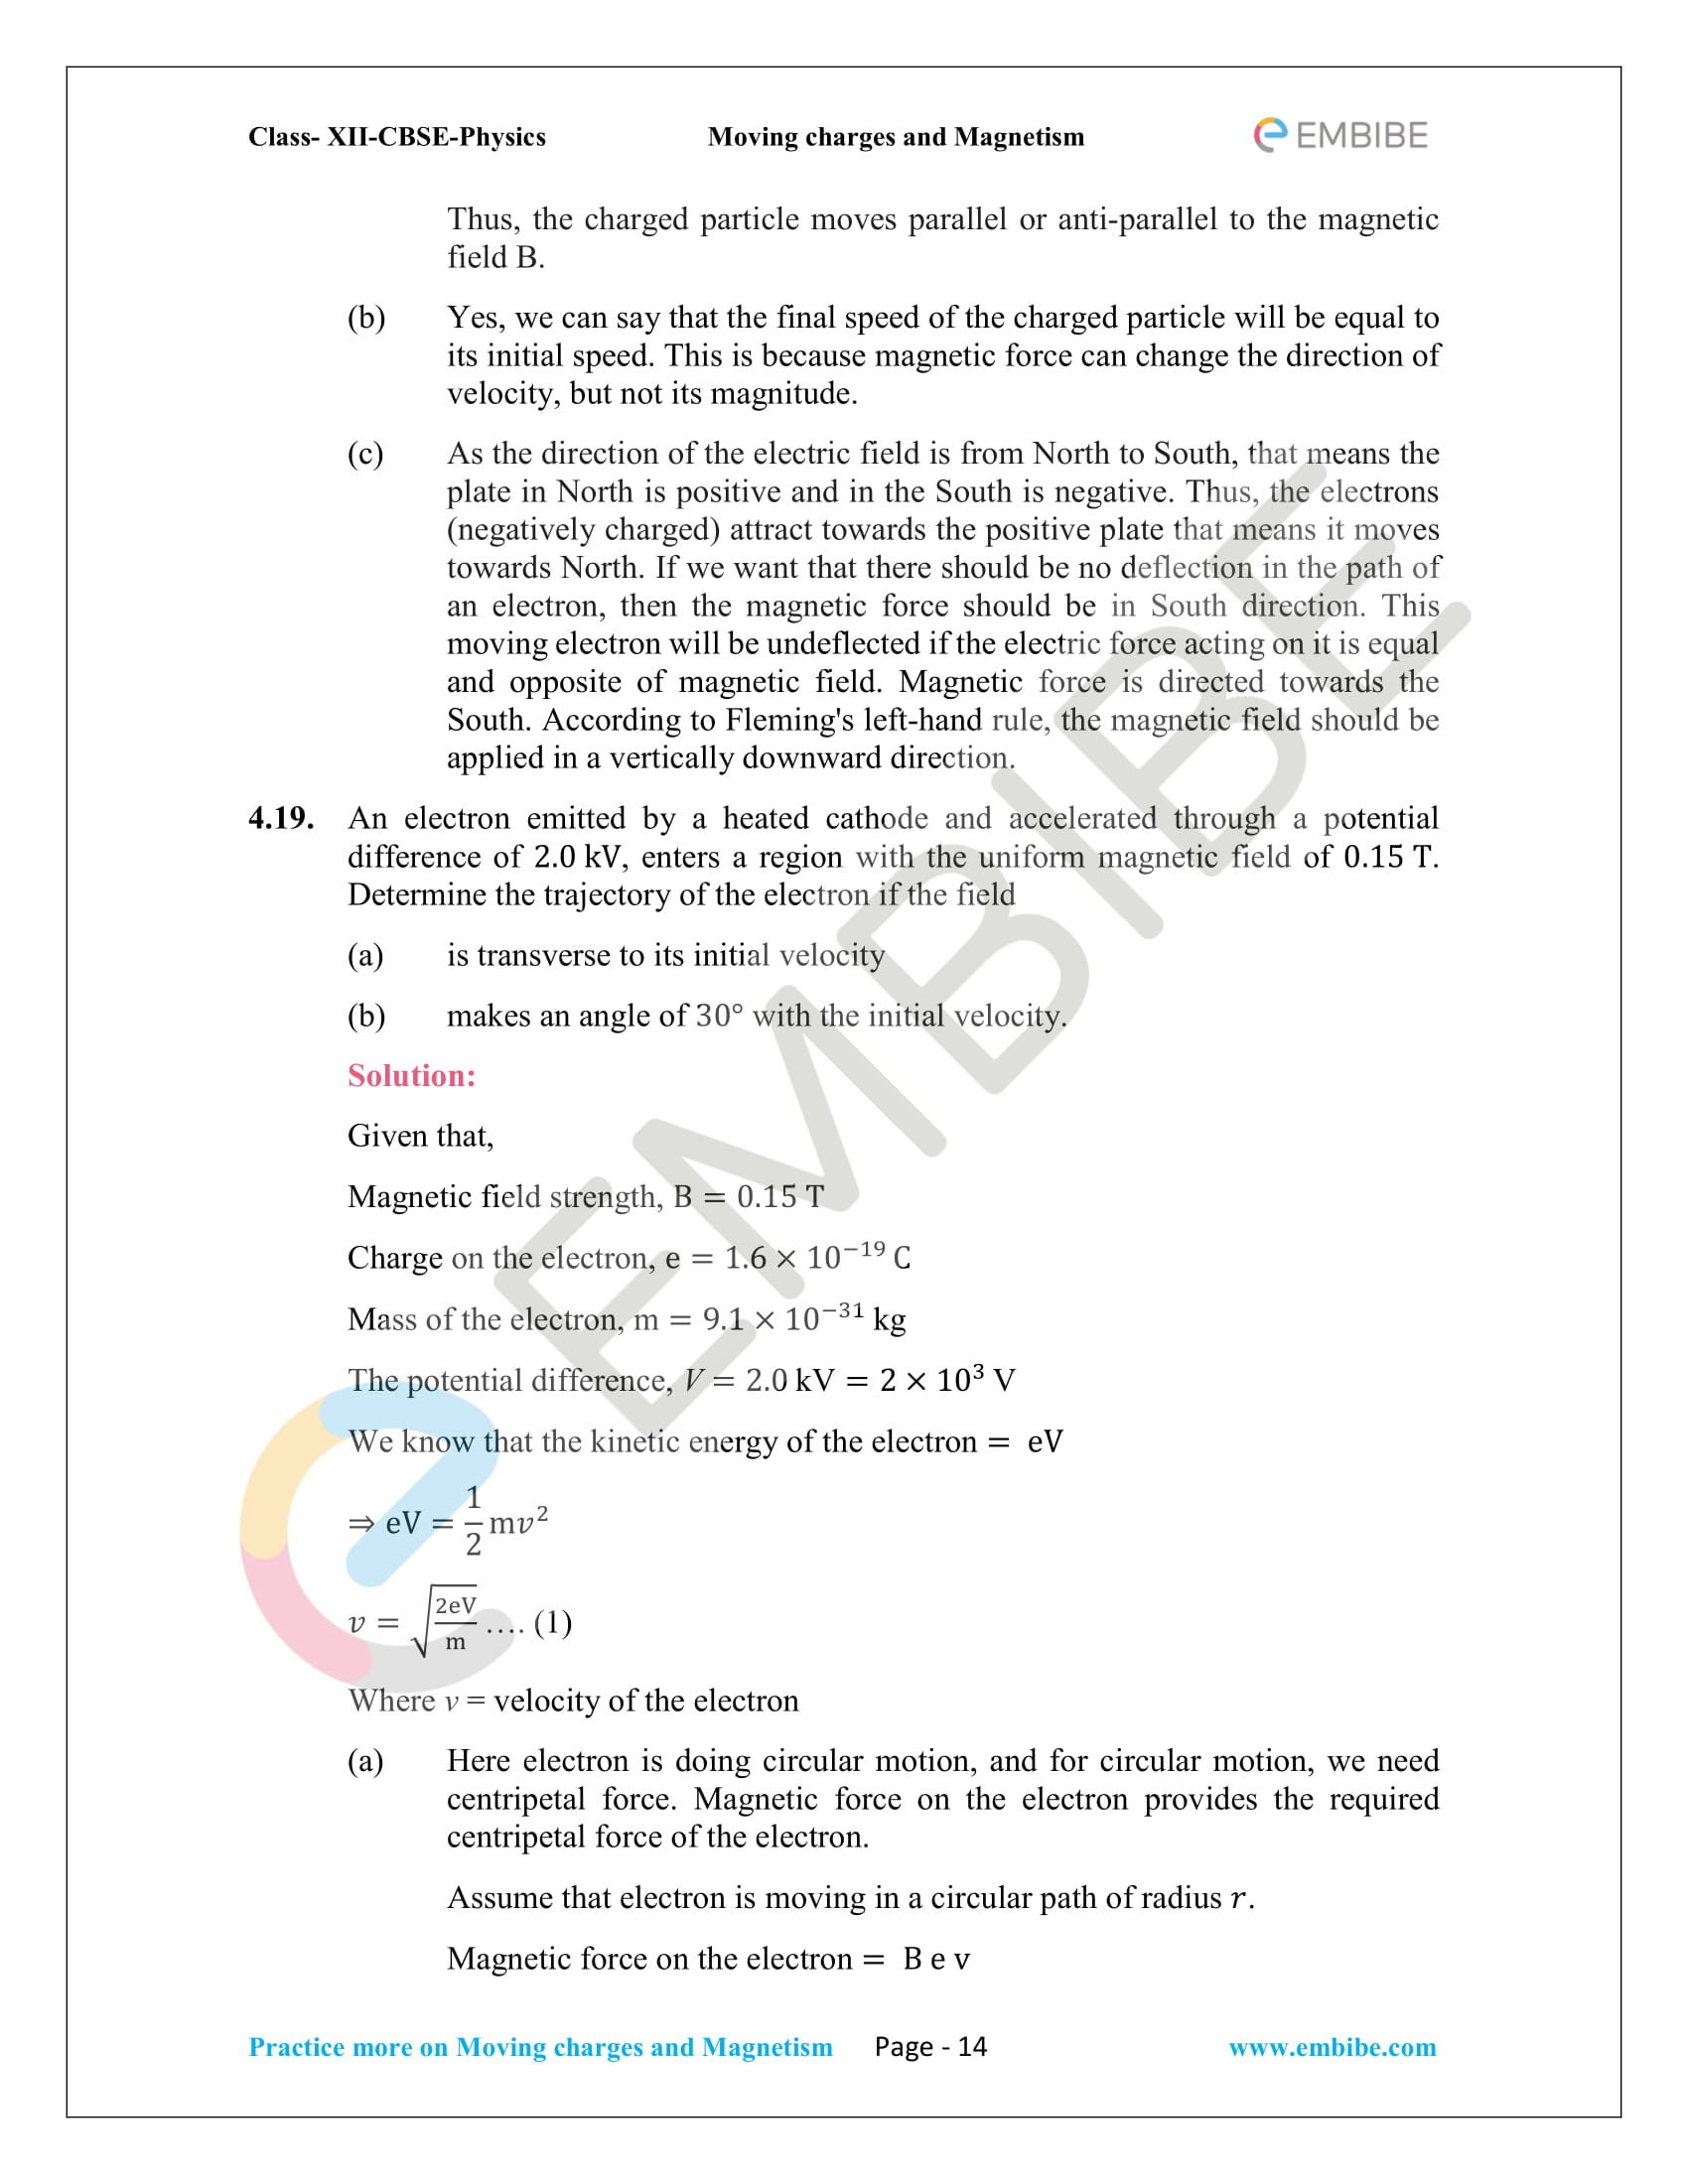 NCERT_Grade 12_Physics_Ch_04_Moving Charges and Magnetism-14